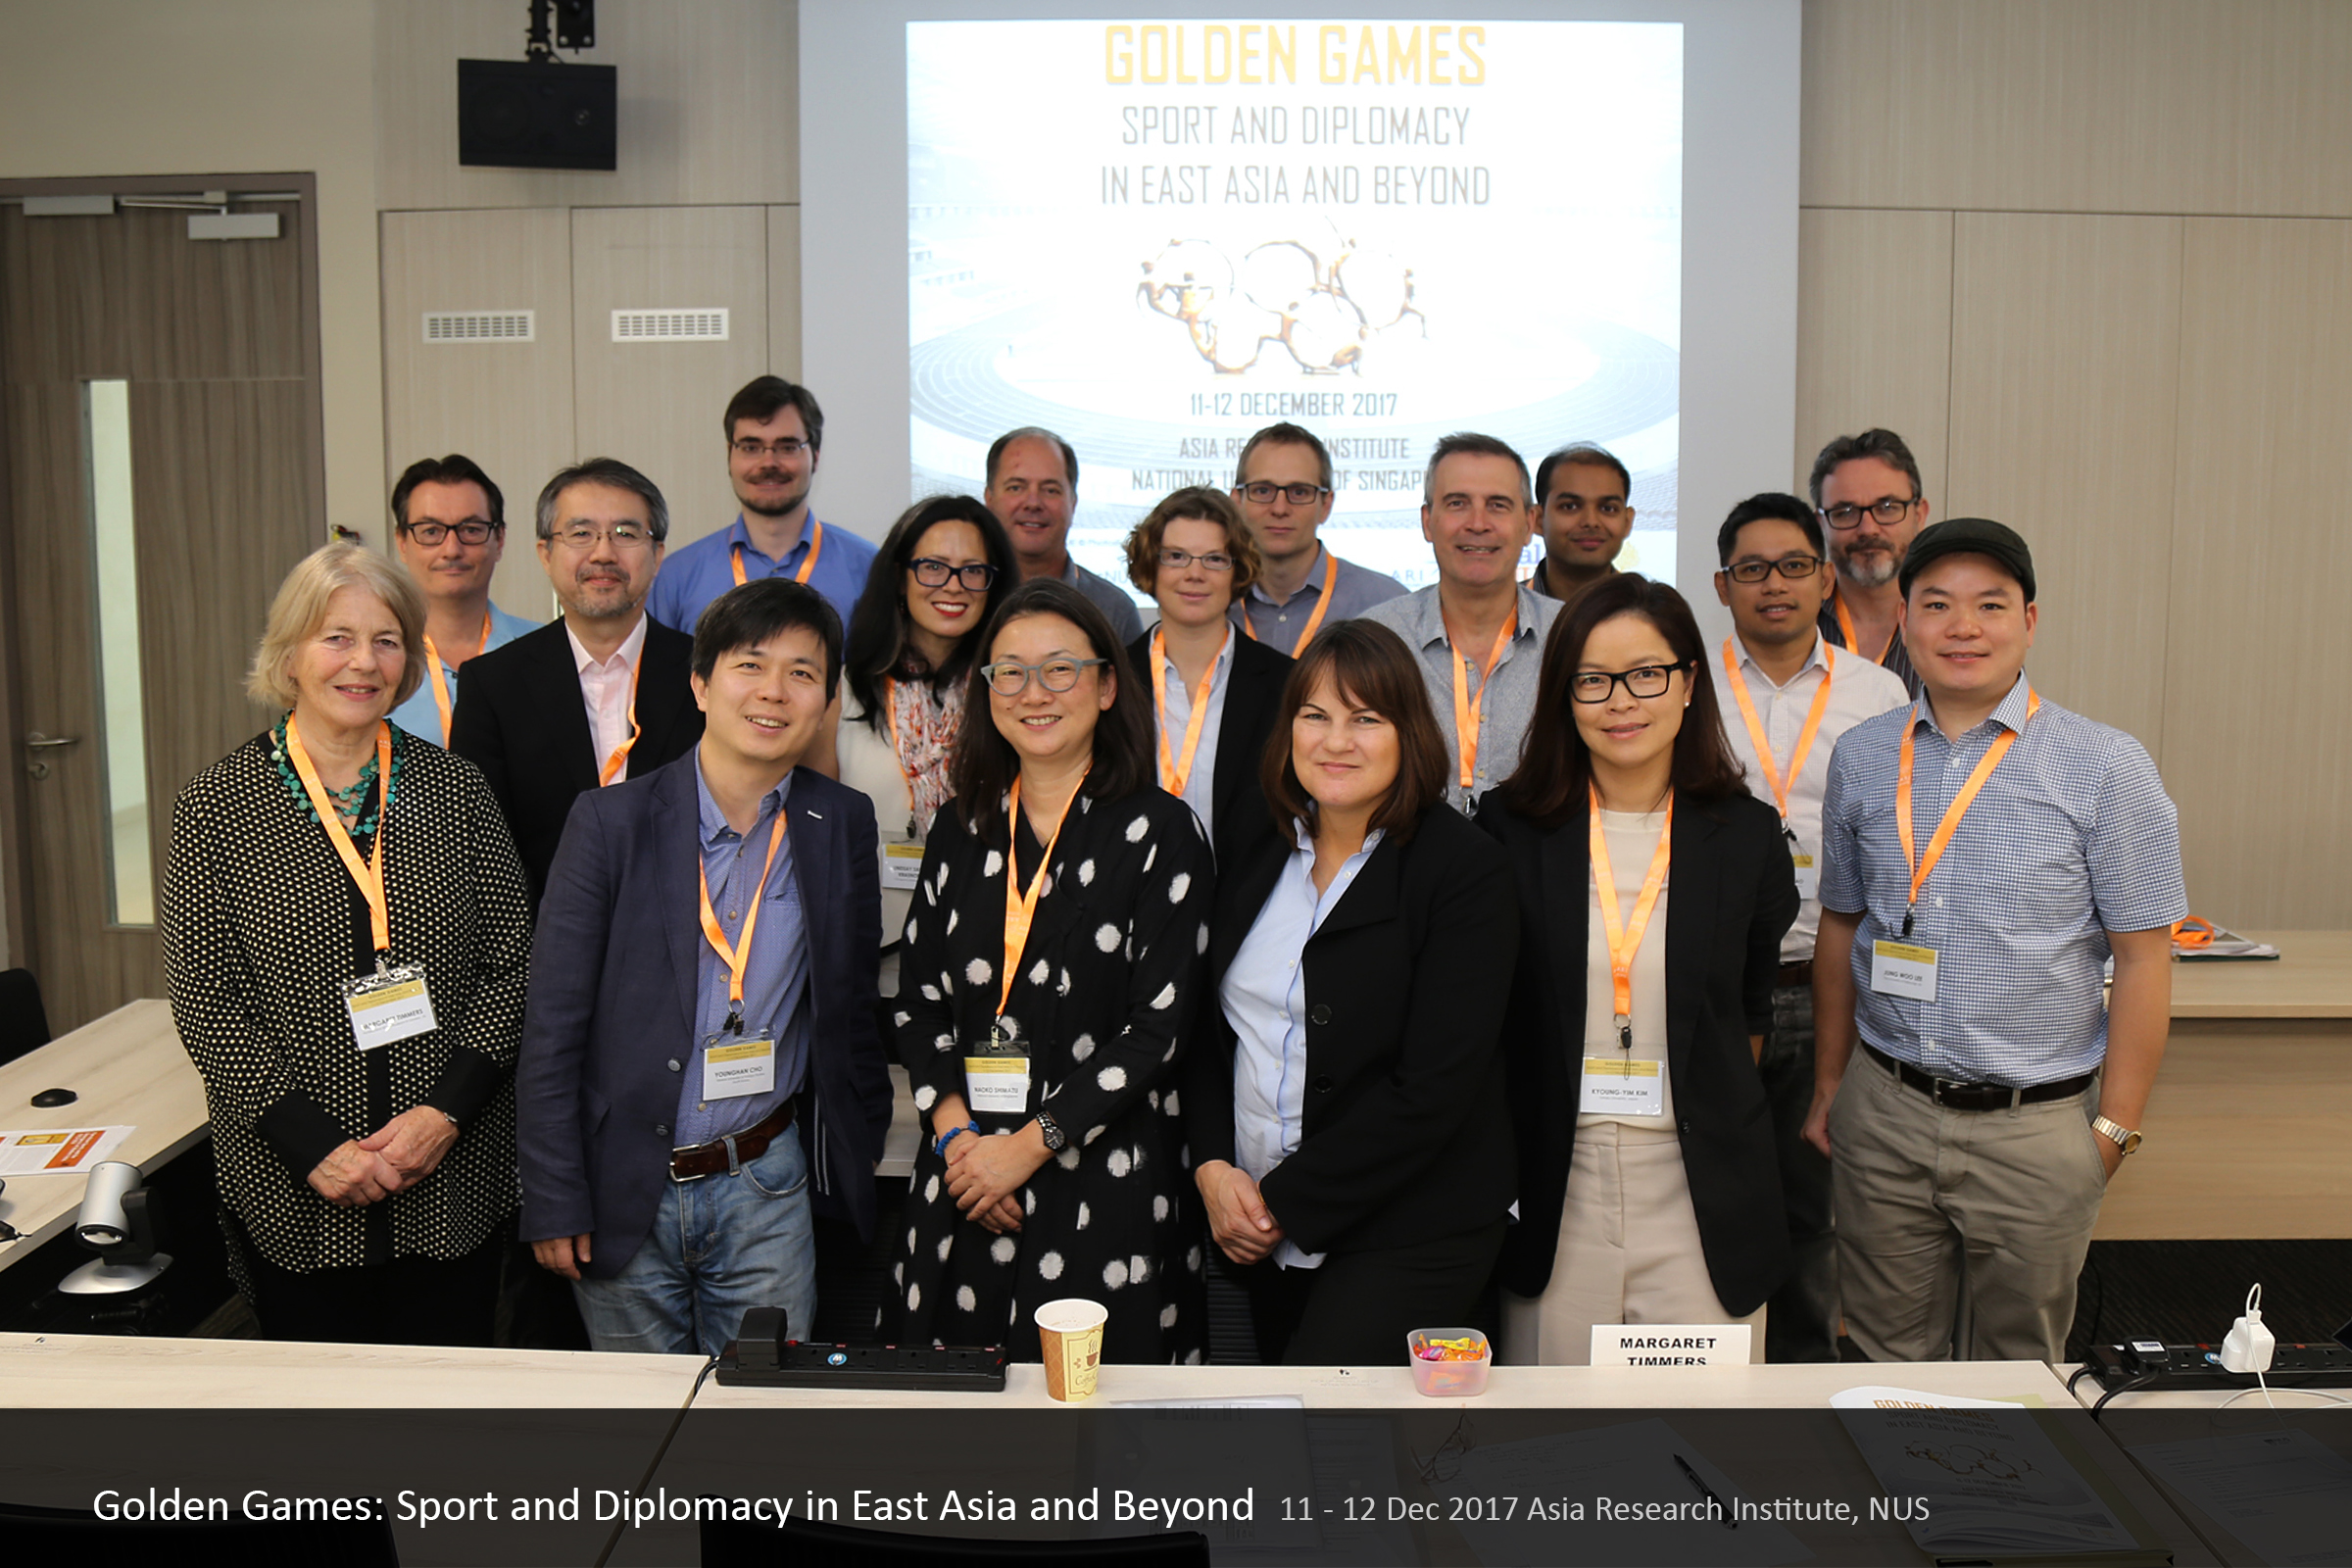 """""""Les Bleus en Chine: The Power of Basketball Diplomacy.""""  #GoldenGamesNUS  Sport and Diplomacy in East Asia and Beyond.  National University of Singapore. December 11-13, 2017 ."""